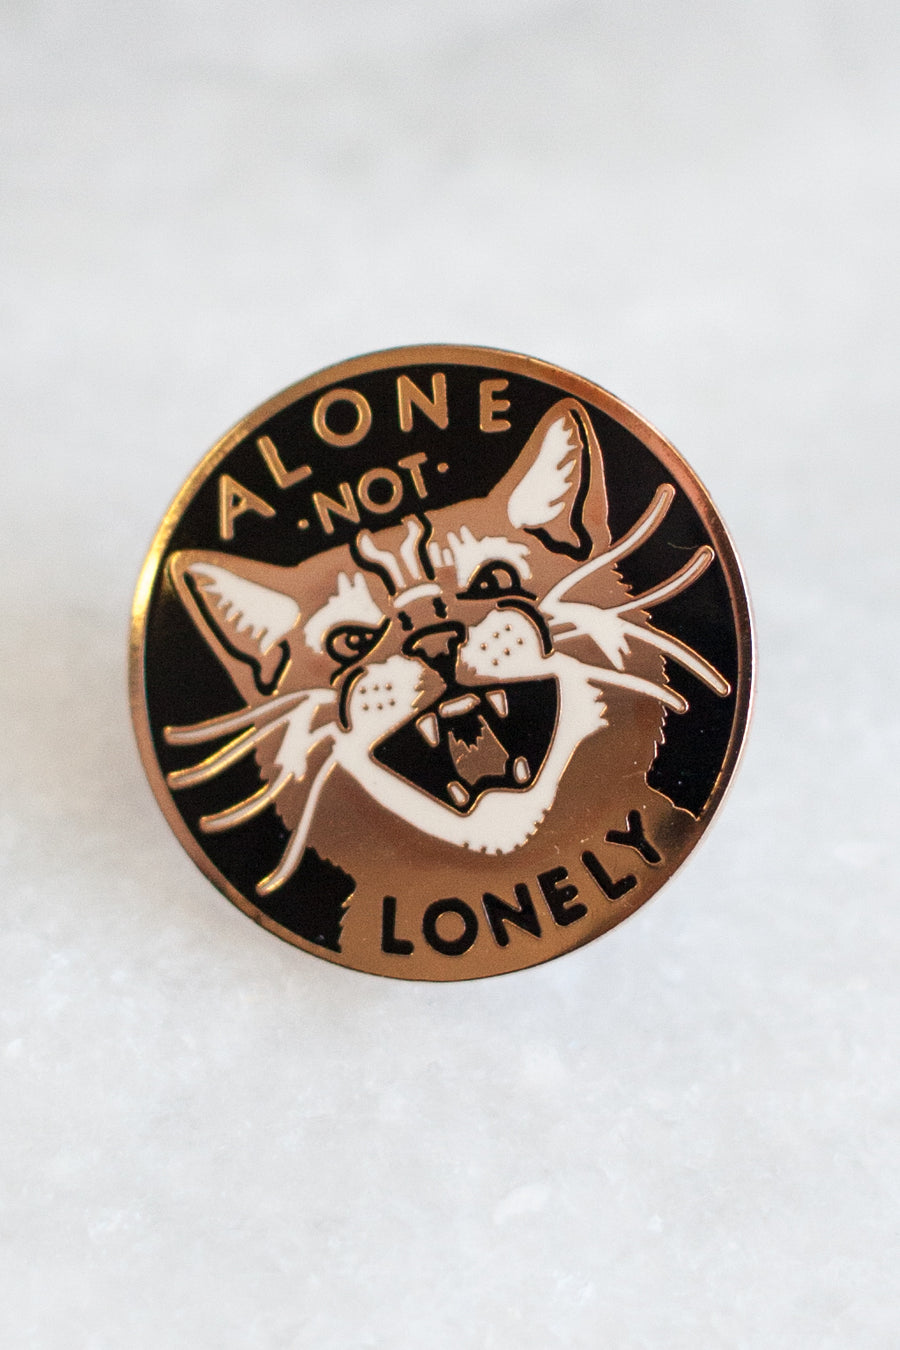 Not Lonely lapel pin